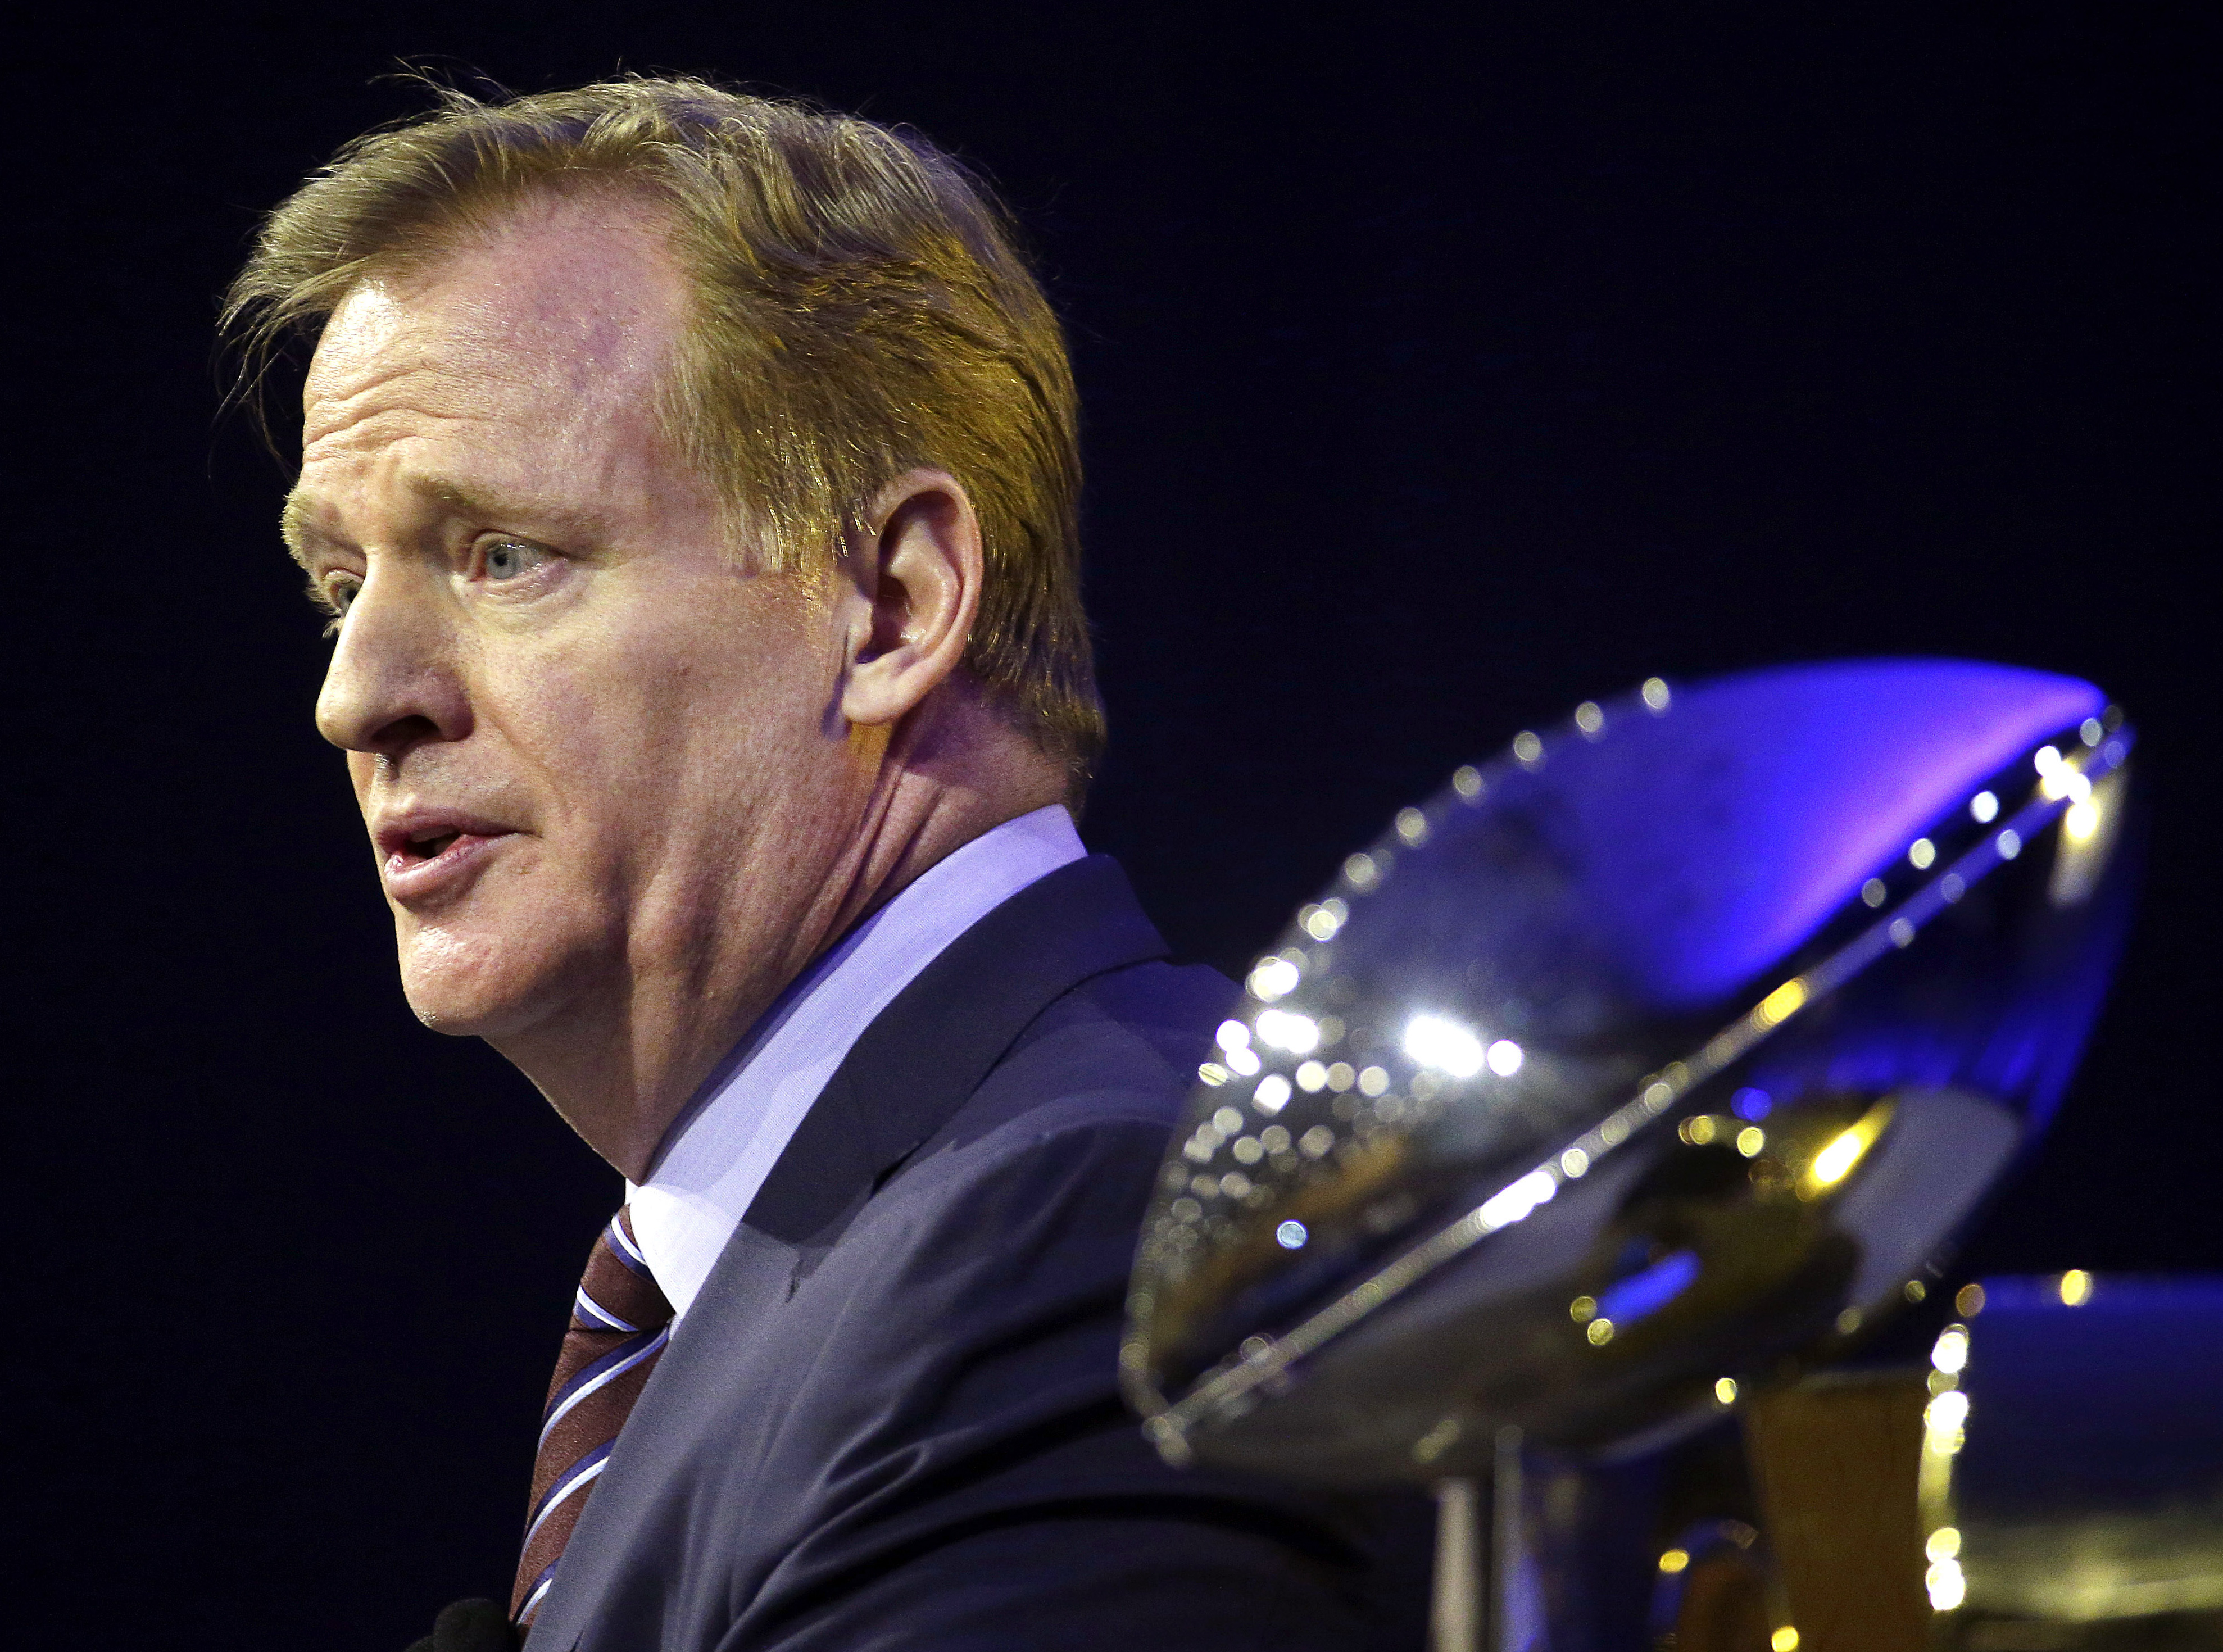 NFL Commissioner Roger Goodell at a news conference in San Francisco on Feb. 5, 2016. (AP Photo/Charlie Riedel)